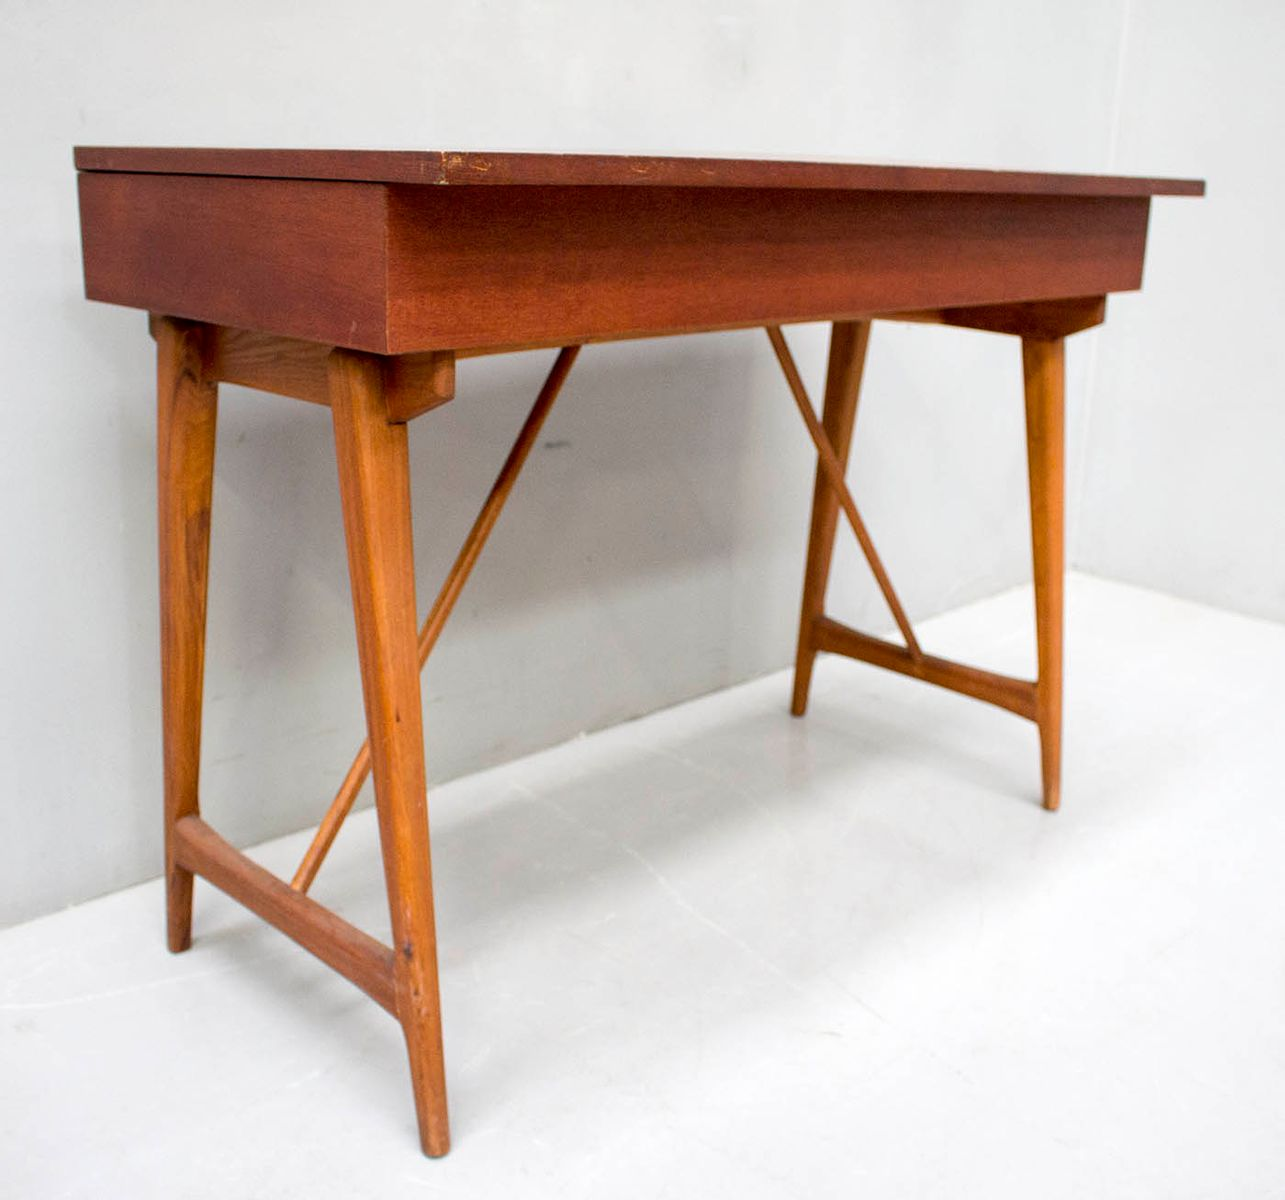 Table Dressing Wood 1950 Scarved ~ Dressing table s for sale at pamono